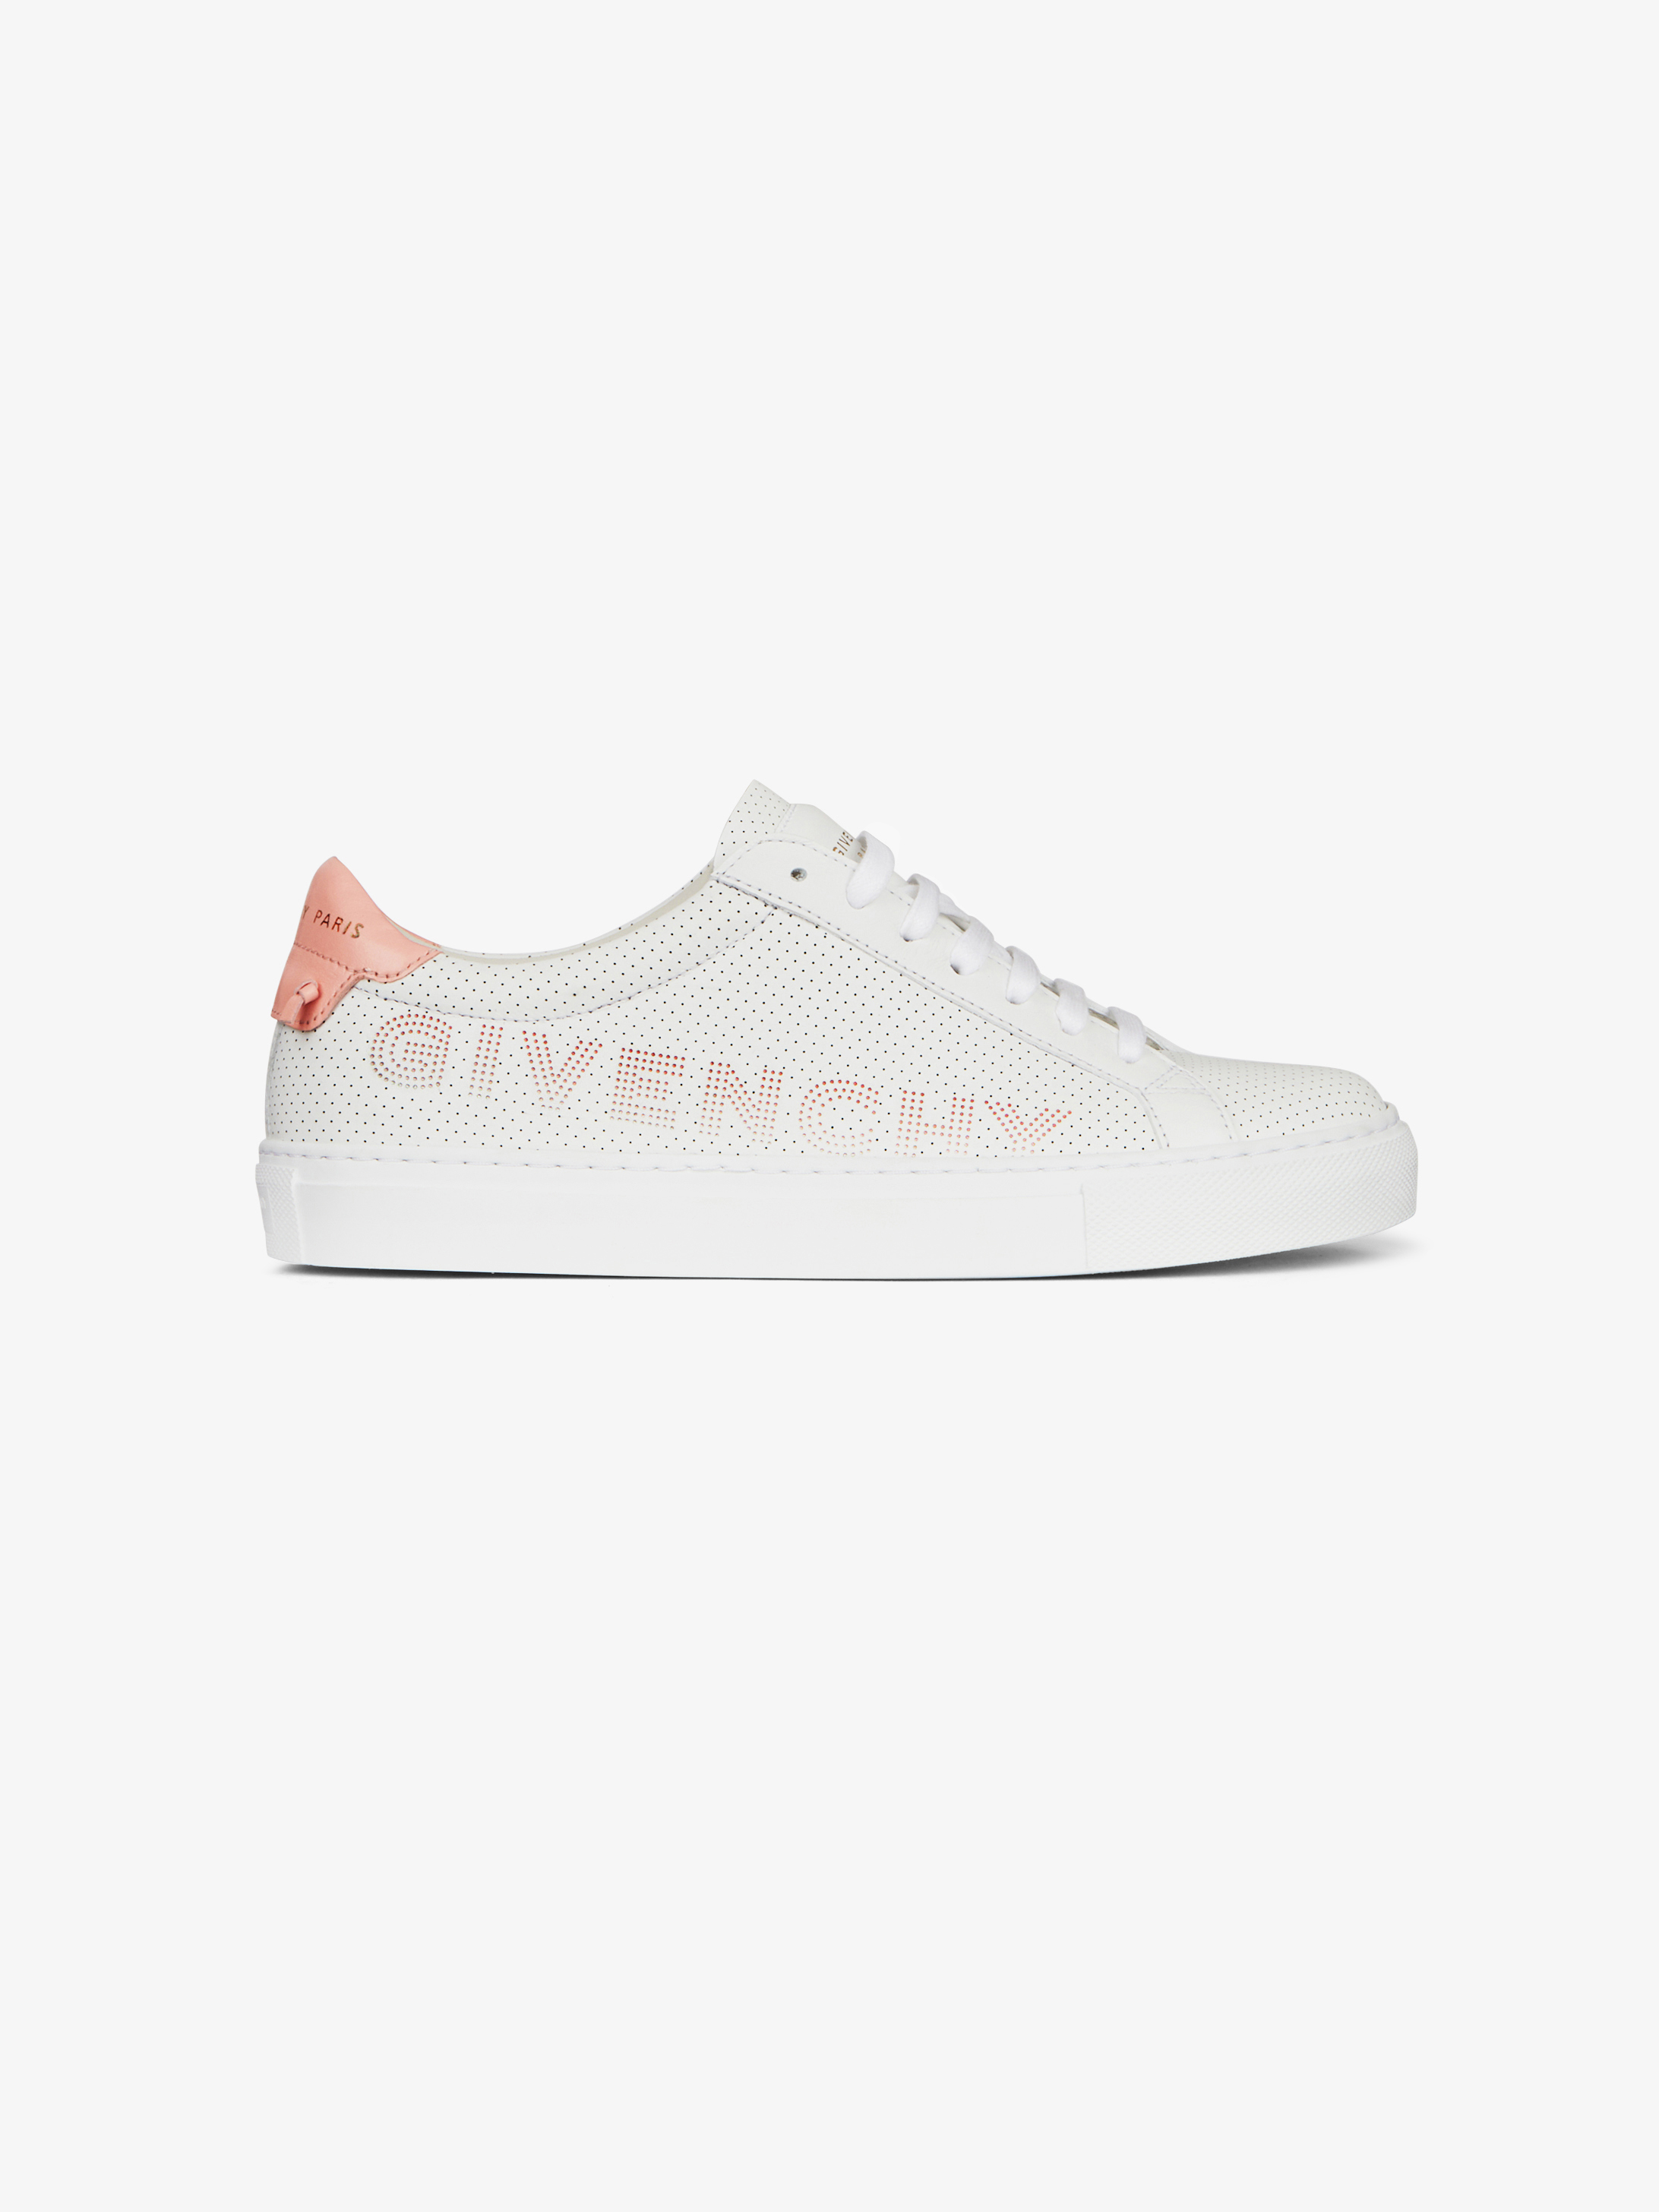 Sneakers in perforated leather